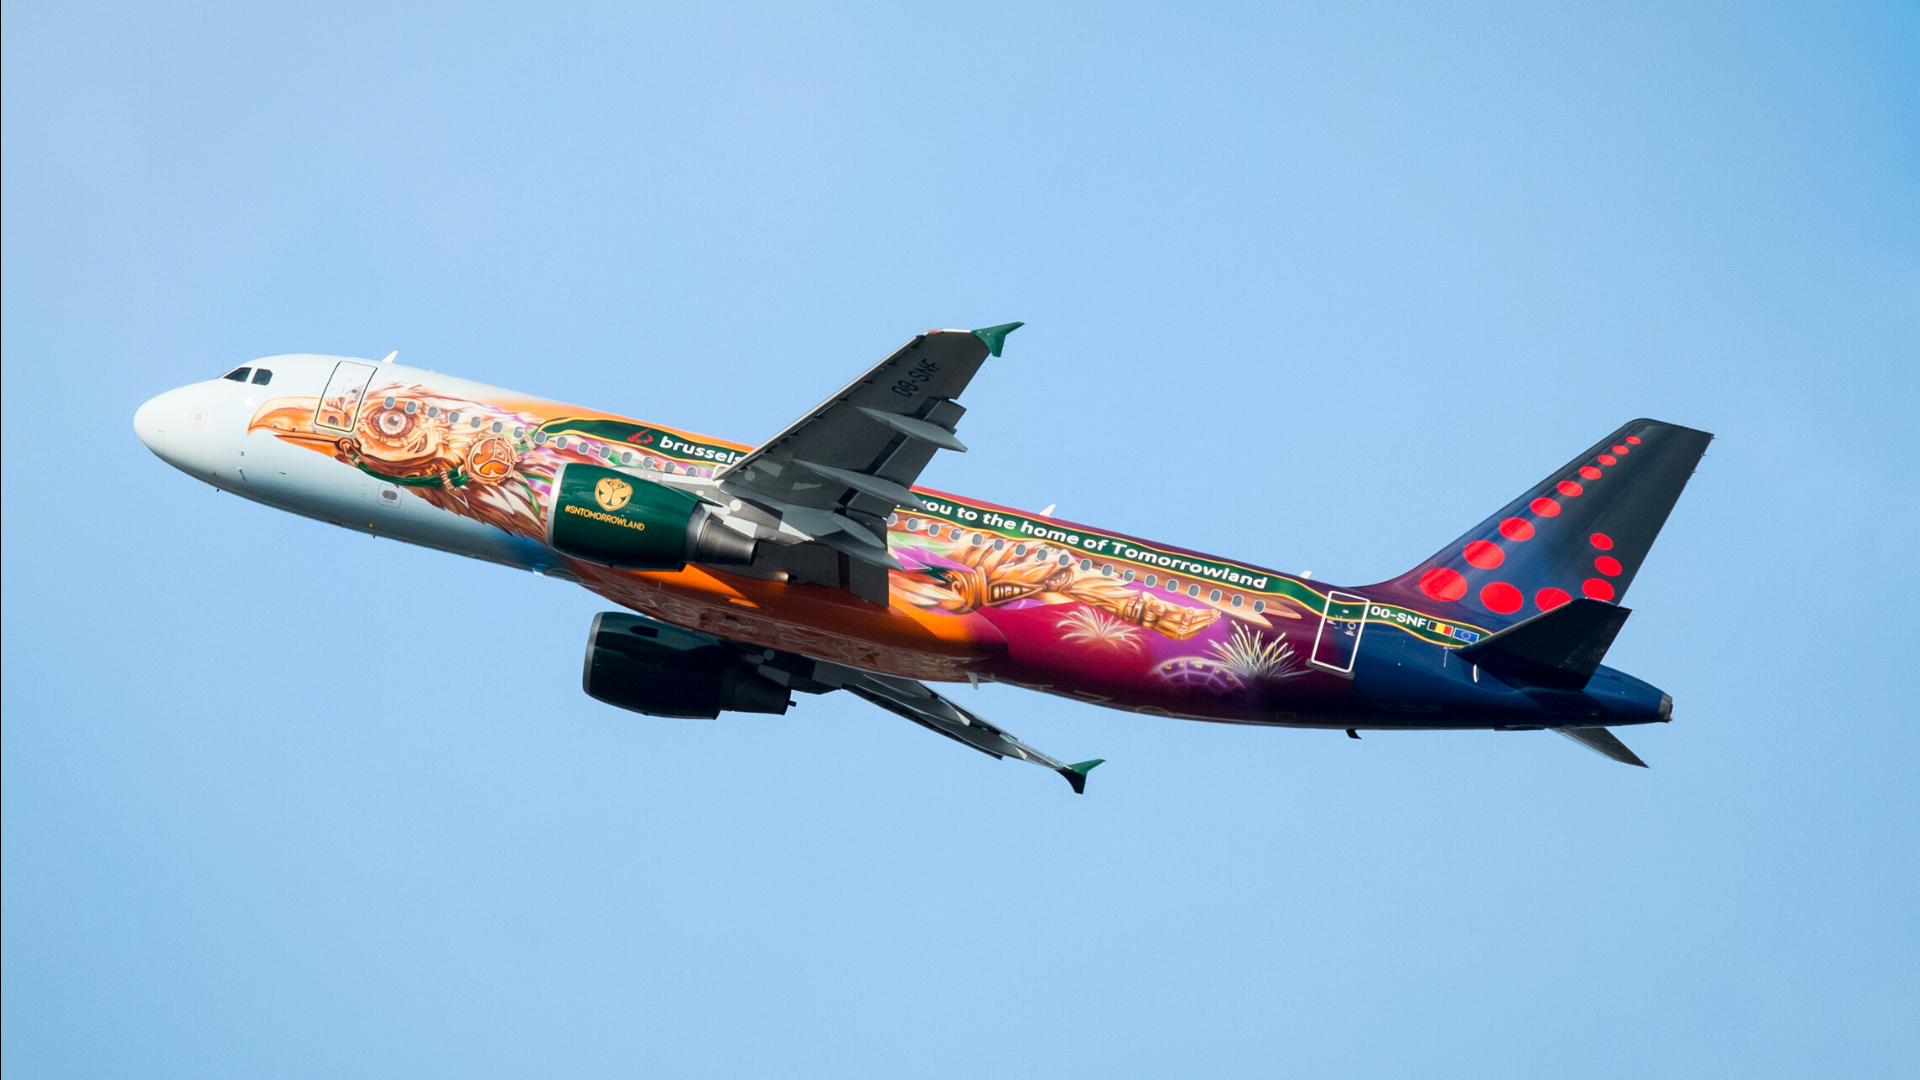 Design your own aircraft, Brussels Airlines opens competition to